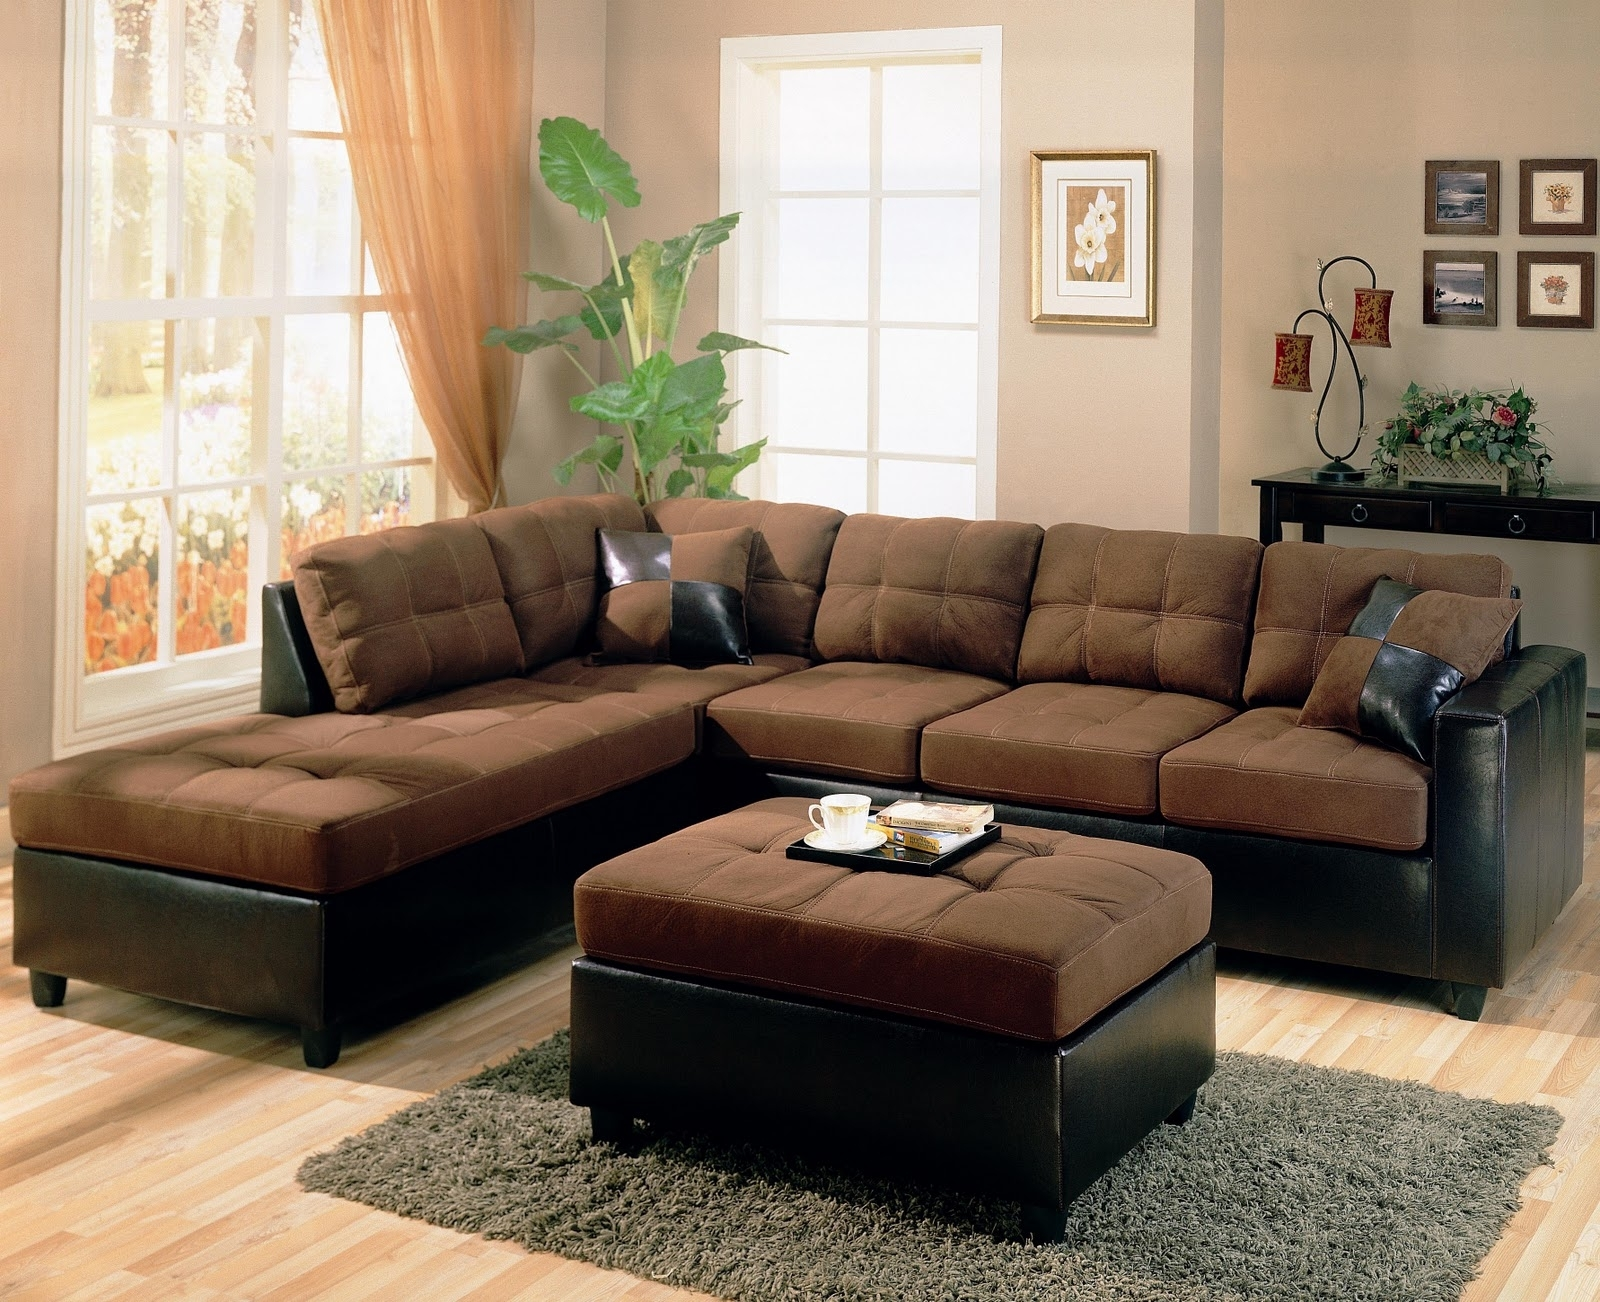 Living Room | Royal Furniture Outlet Throughout Royal Furniture Sectional Sofas (Image 10 of 10)